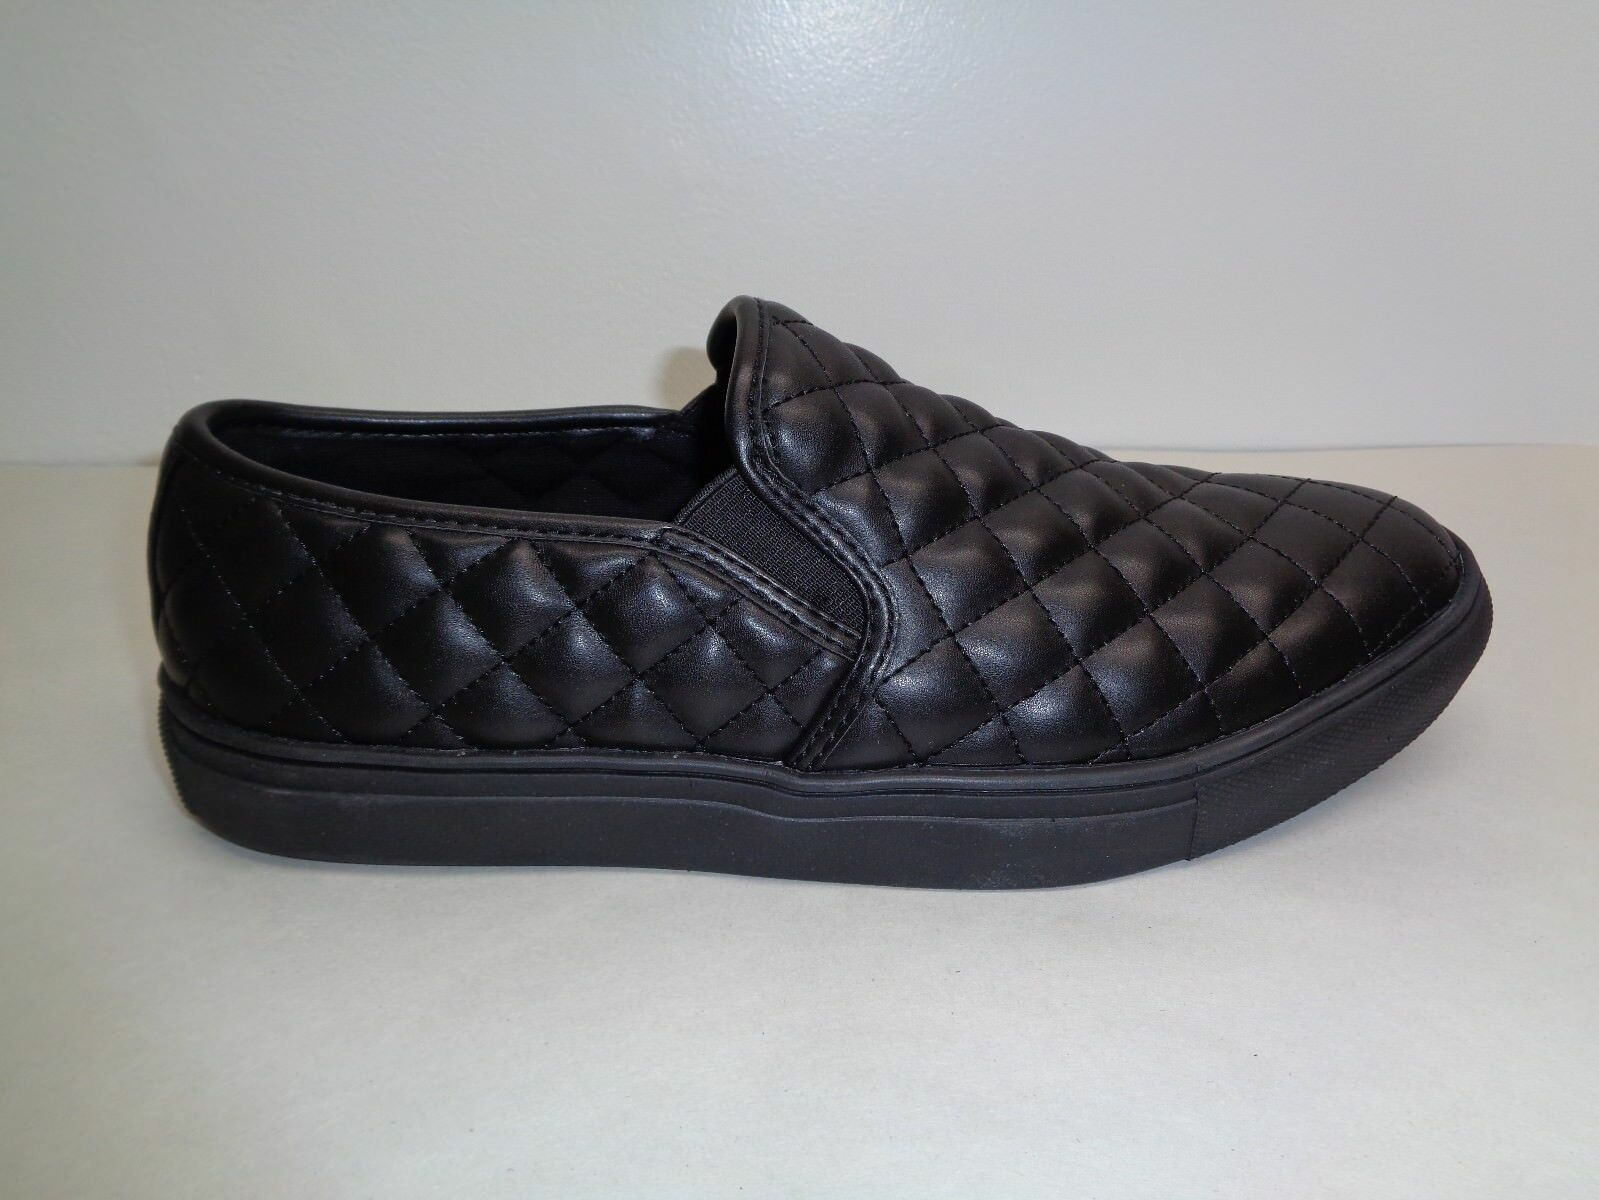 Steve Madden Size 13 M ELEMENT Black Slip On Loafers Sneakers New Mens Shoes